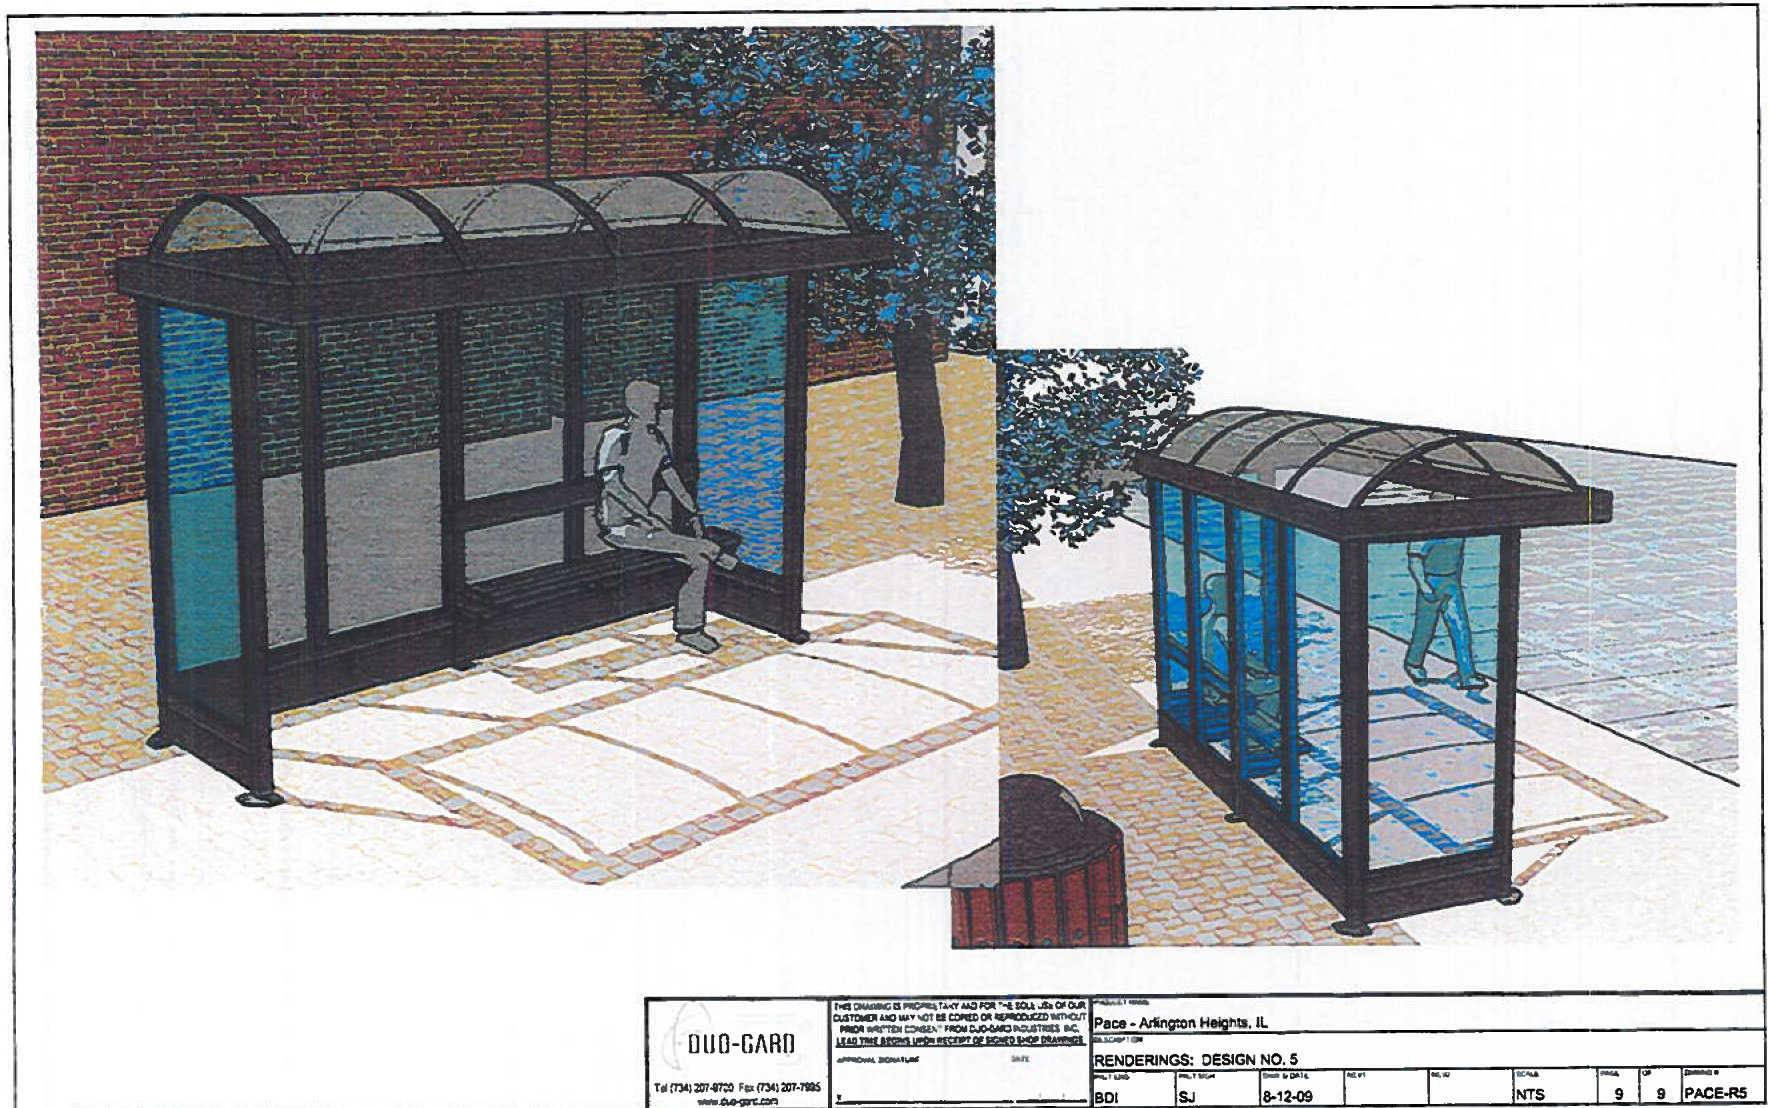 Downtown Des Plaines getting new bus shelter